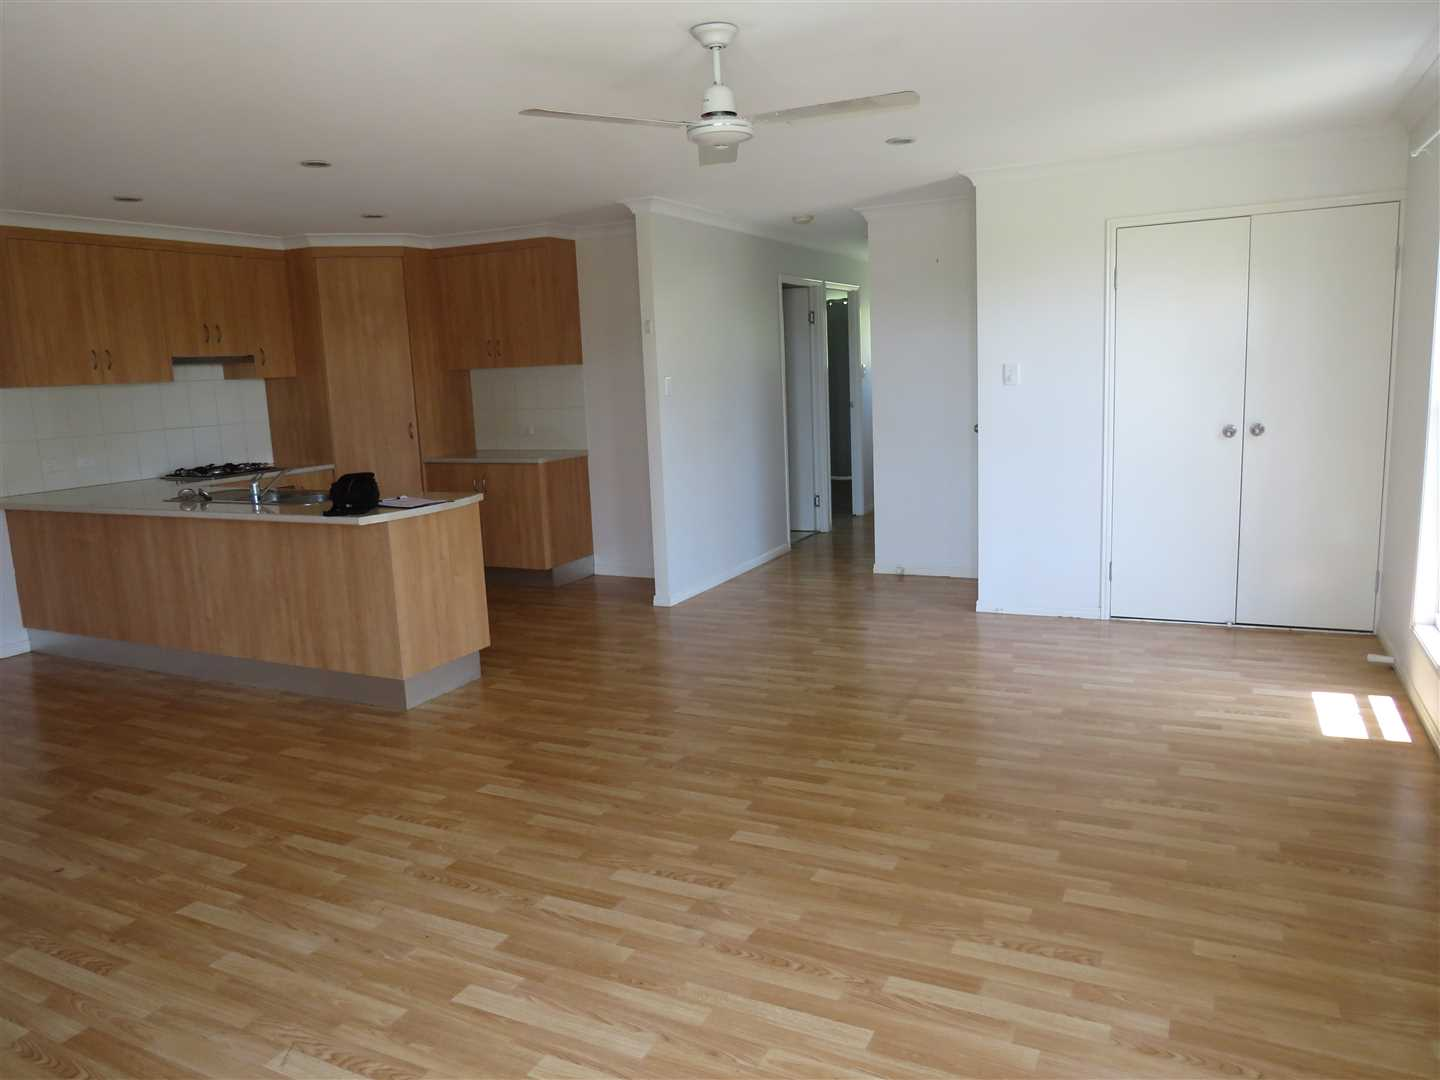 hallway leads to 2 rooms and main bathroom. Laundry behind double doors.Ceiling fans, droplights. Vinyl floorcoverings